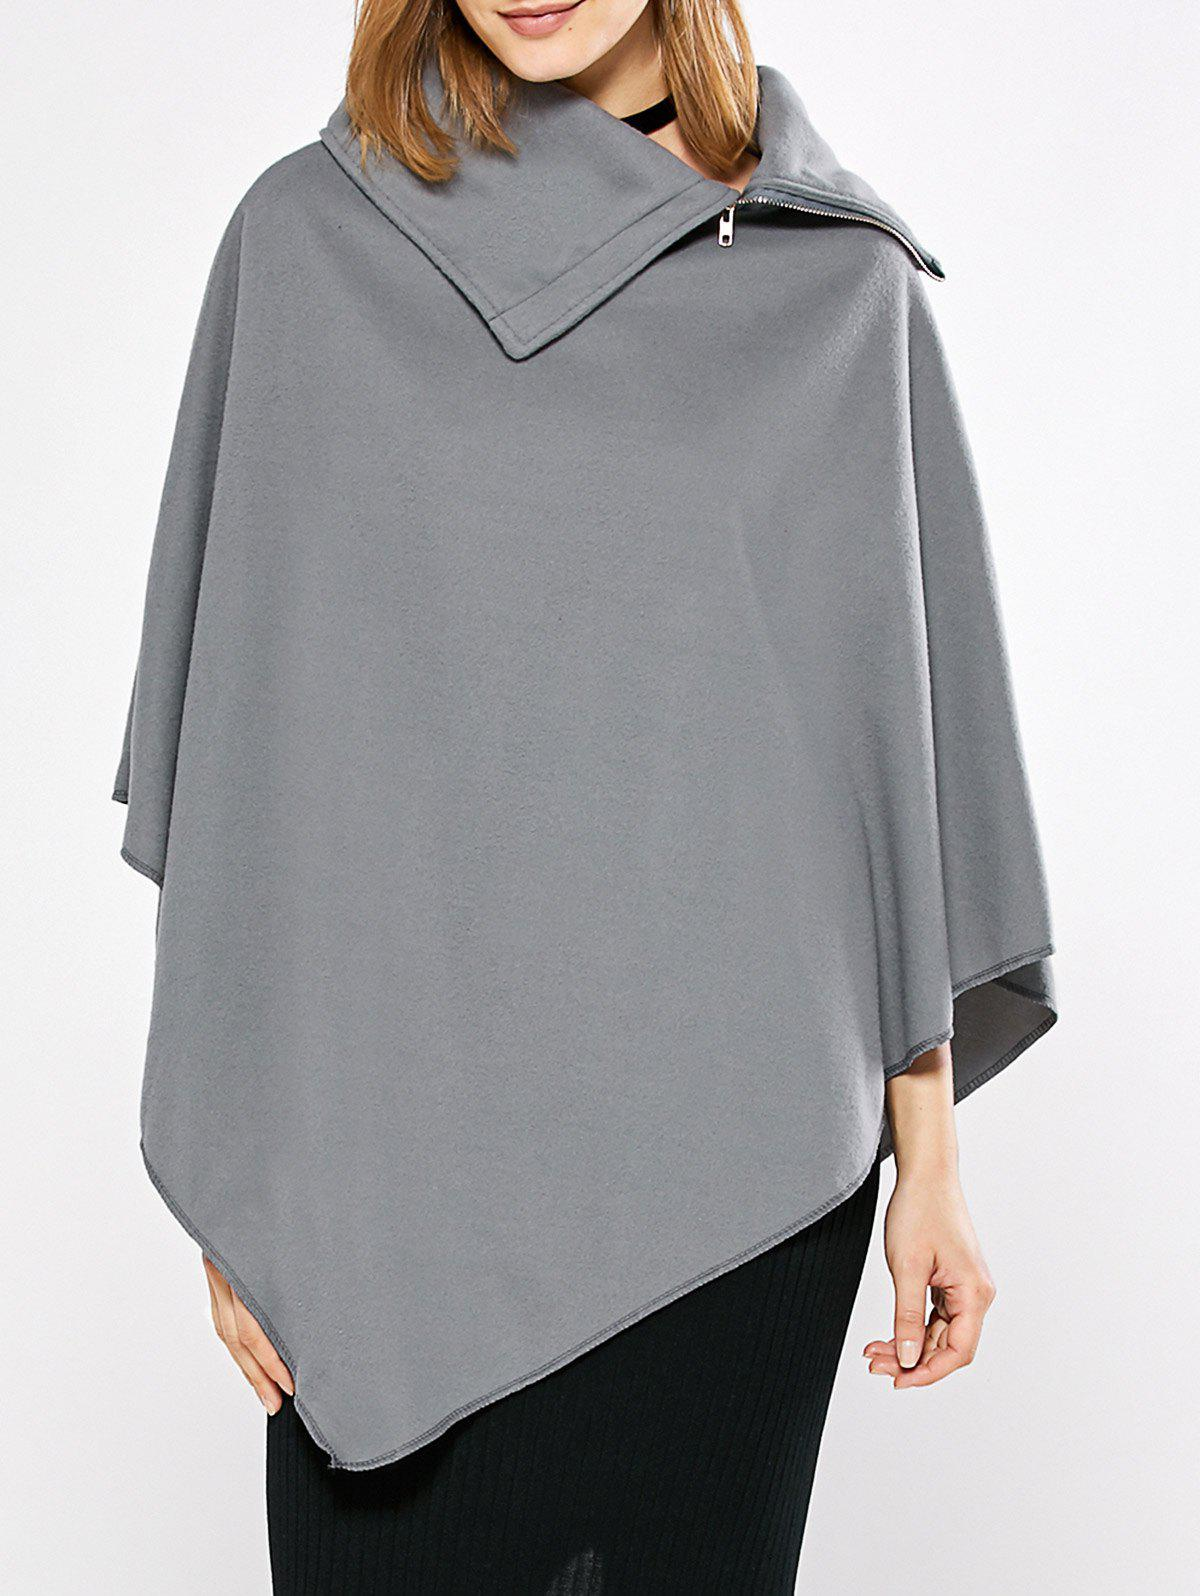 Simple Style Turn-down Collar Loose Women Cloak - GRAY M